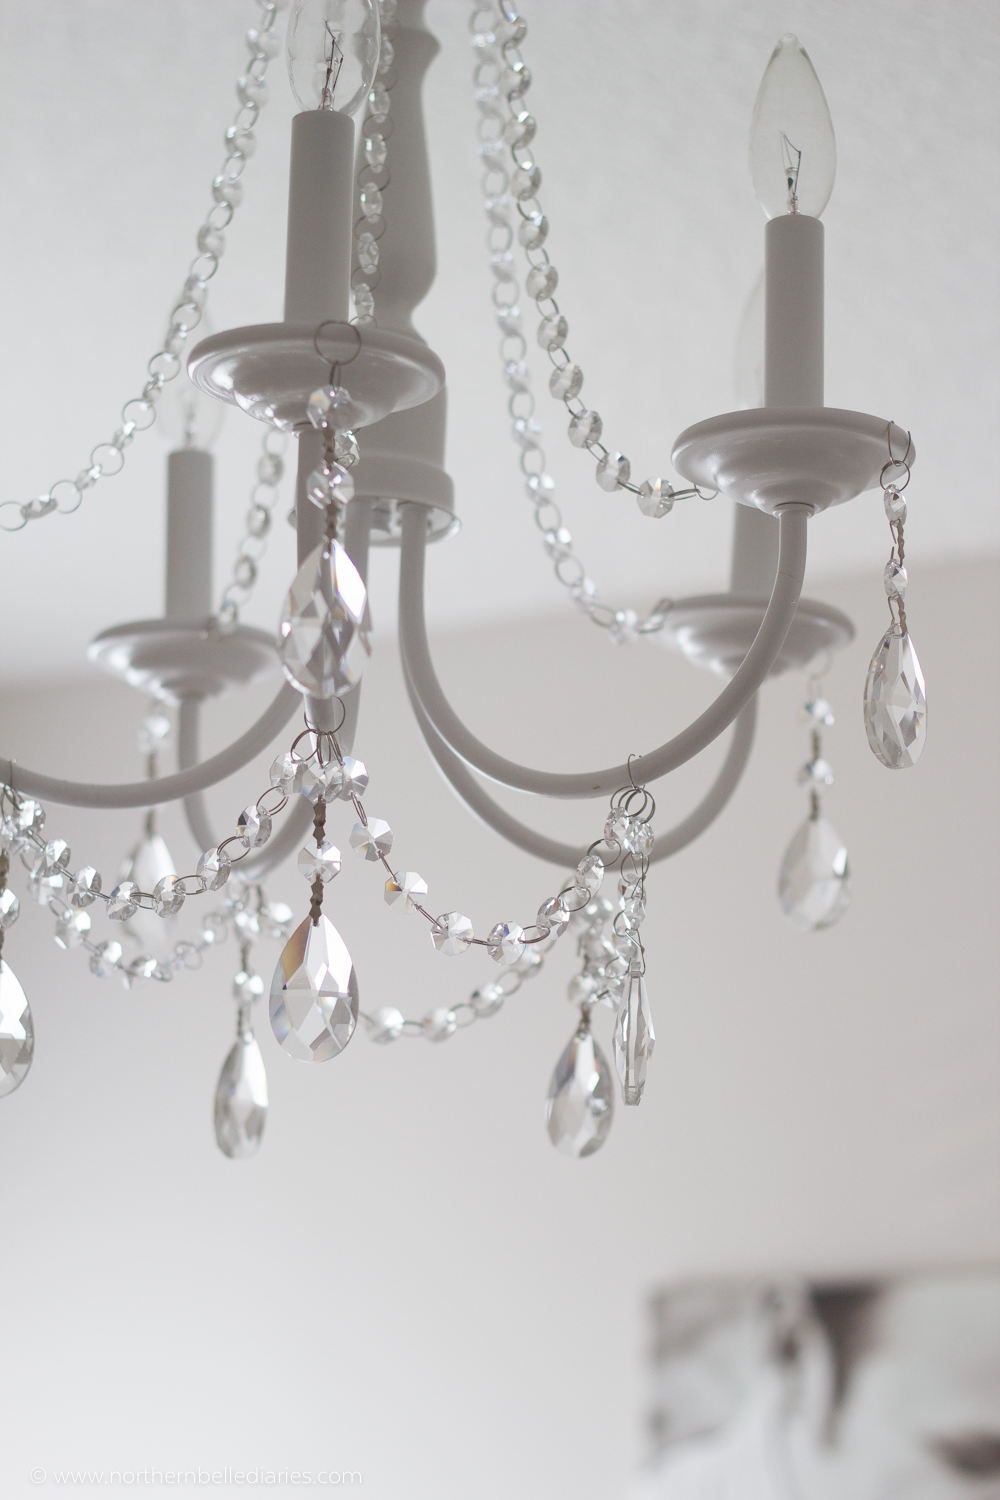 How to make your own diy crystal chandelier picky stitch you should just be working with the frame of the chandelier cover your chandelier with a coat of spray paint in the desired color arubaitofo Images